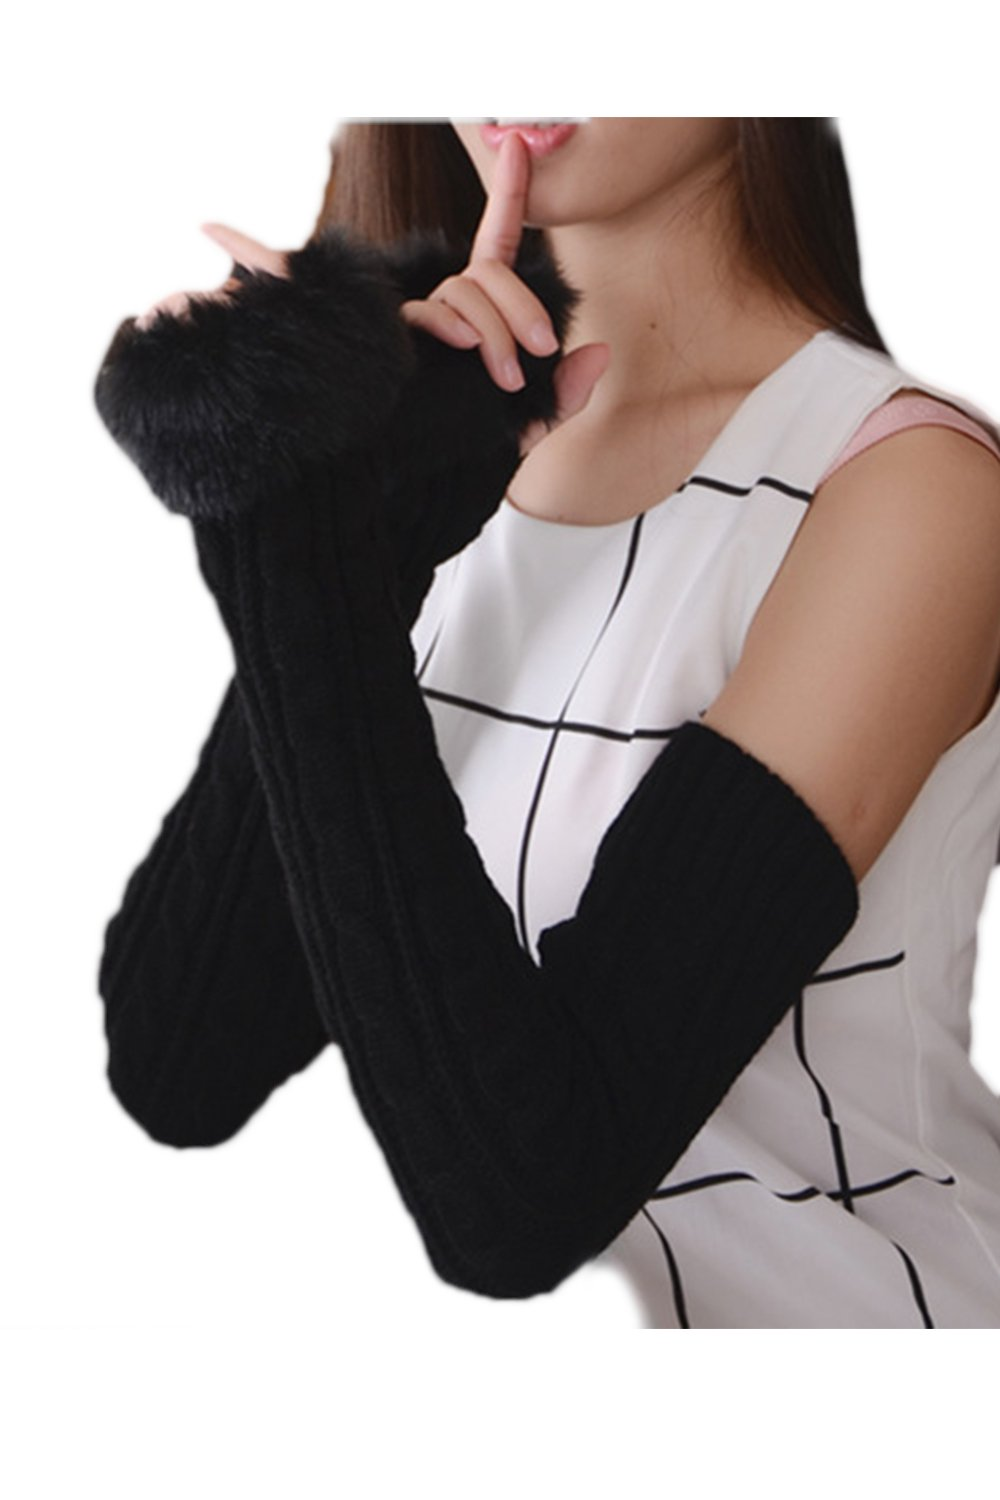 YACUN Women's Winter Cold Weather Knit Fingerless Long Arm Warmer Gloves Coffee F CADT001Coffee_F